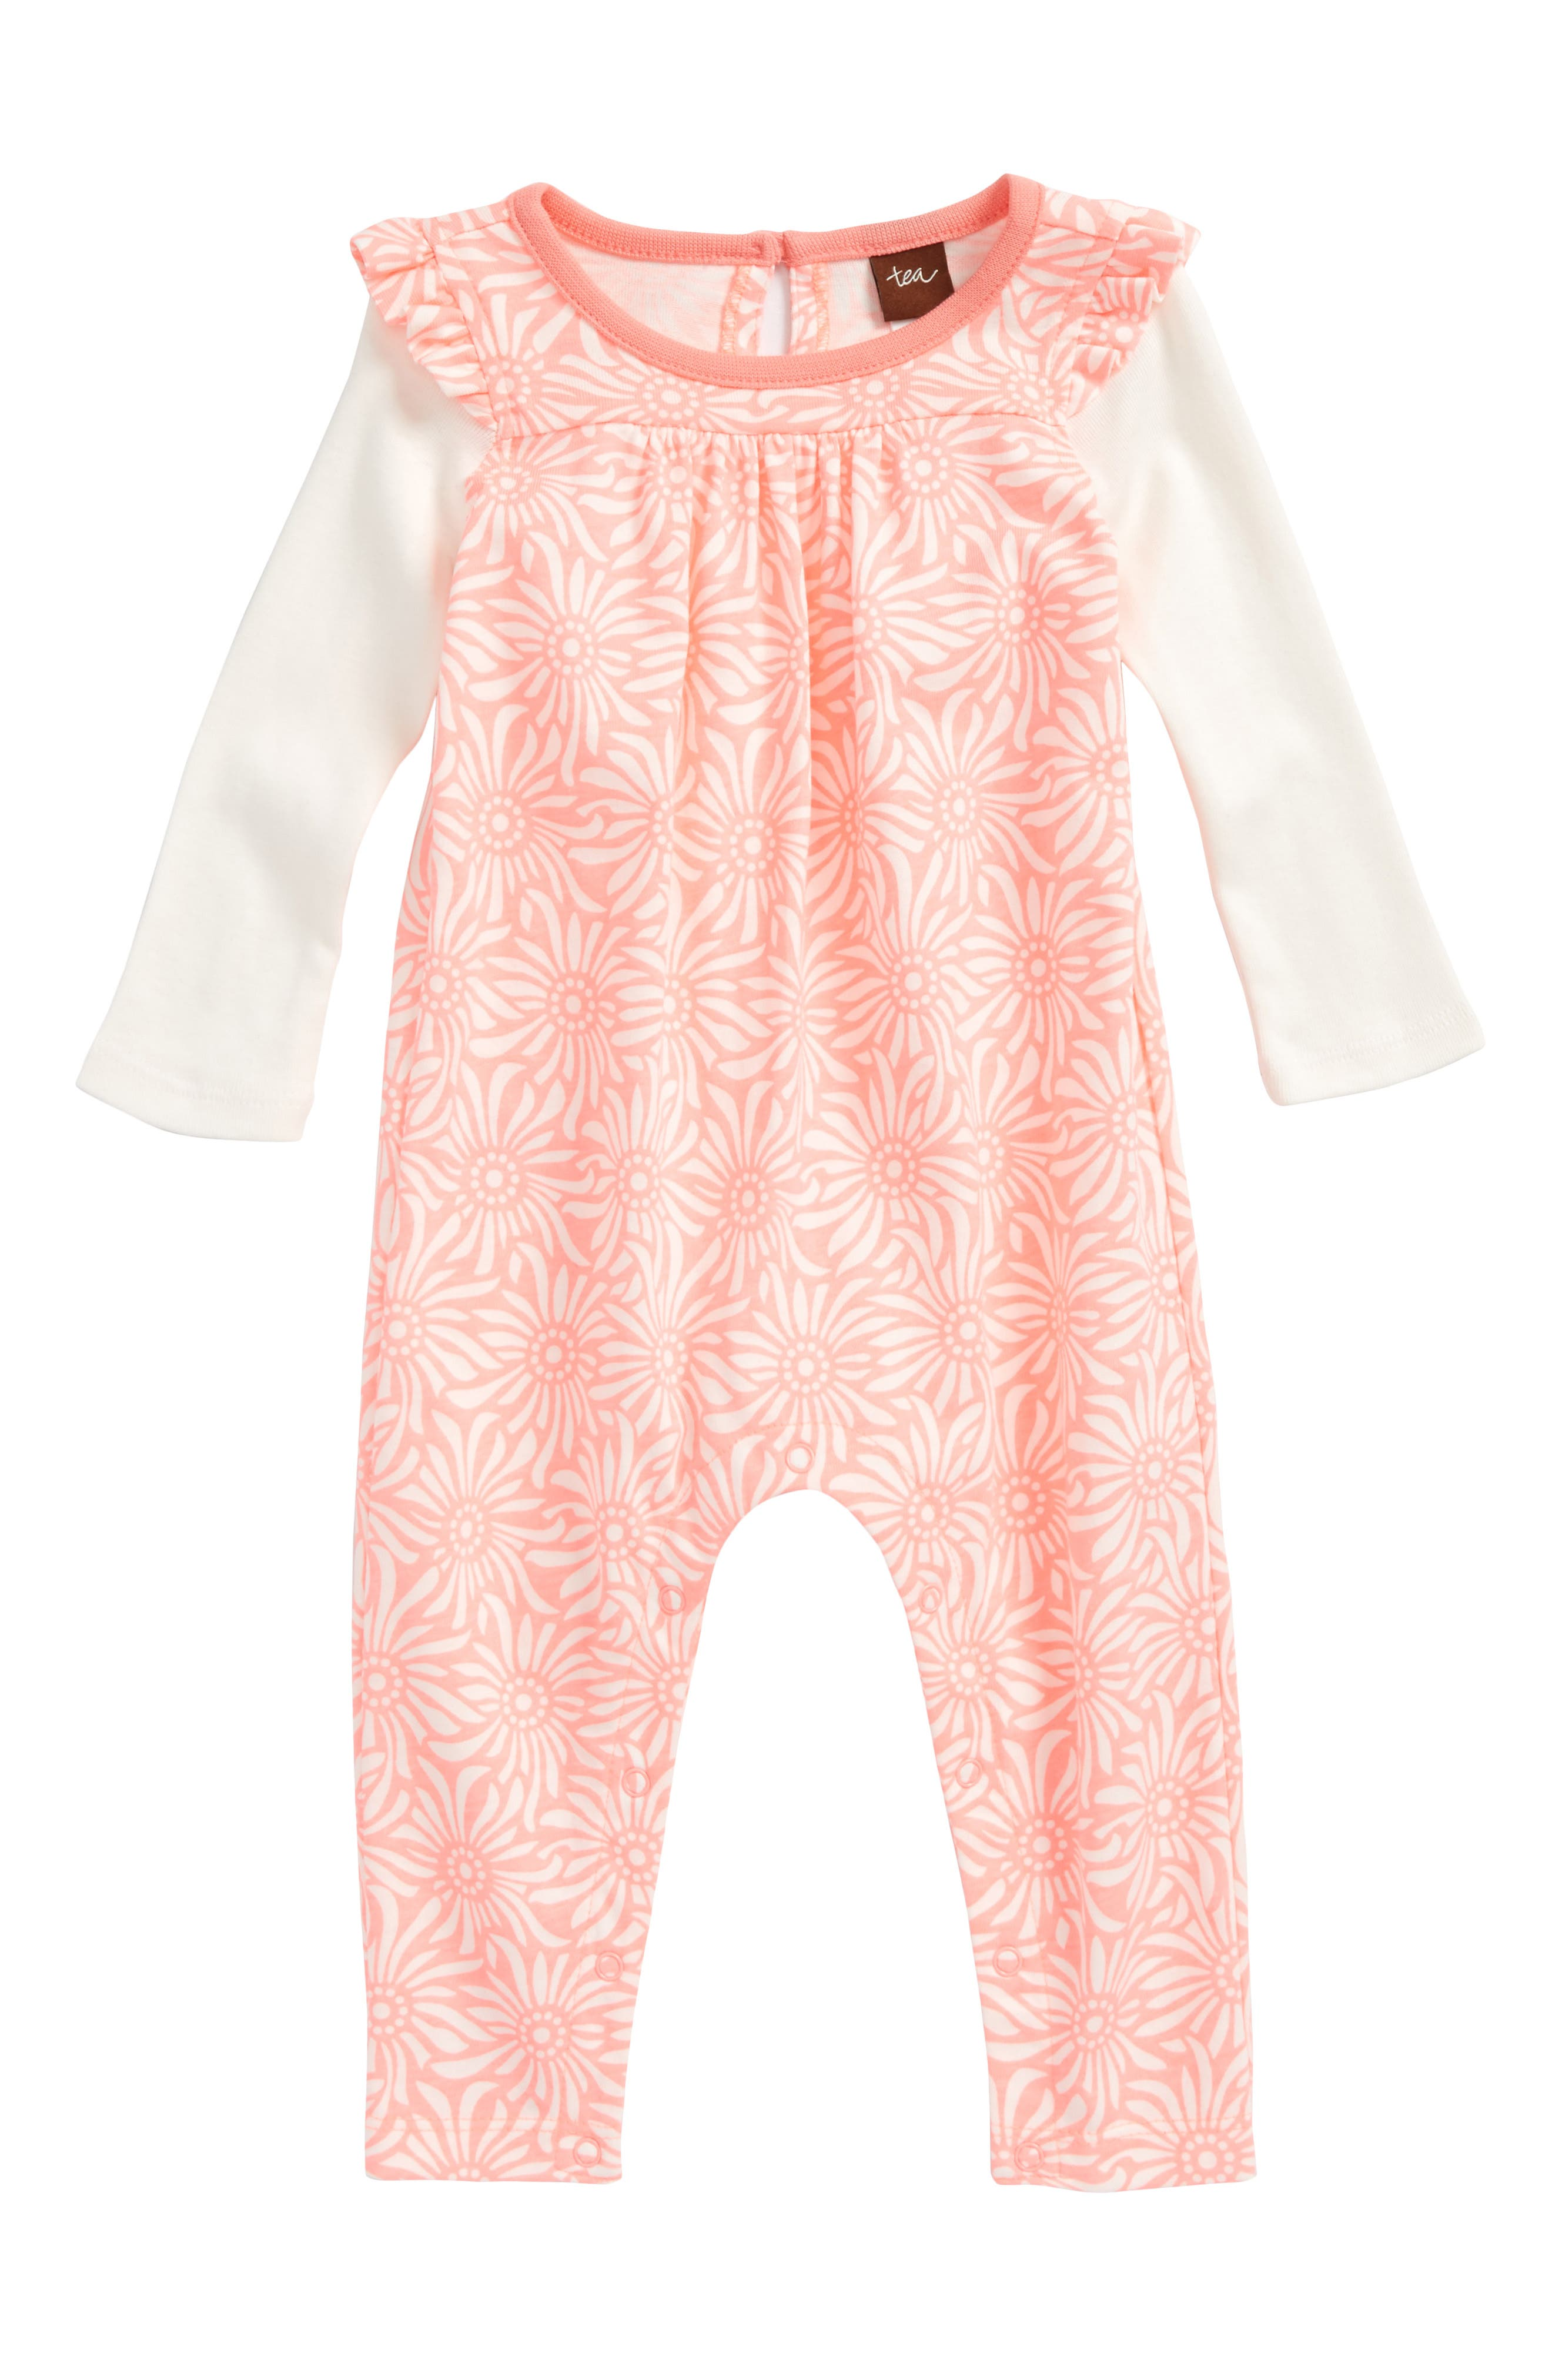 Tea Collection Daisy Field Romper (Baby Girls)